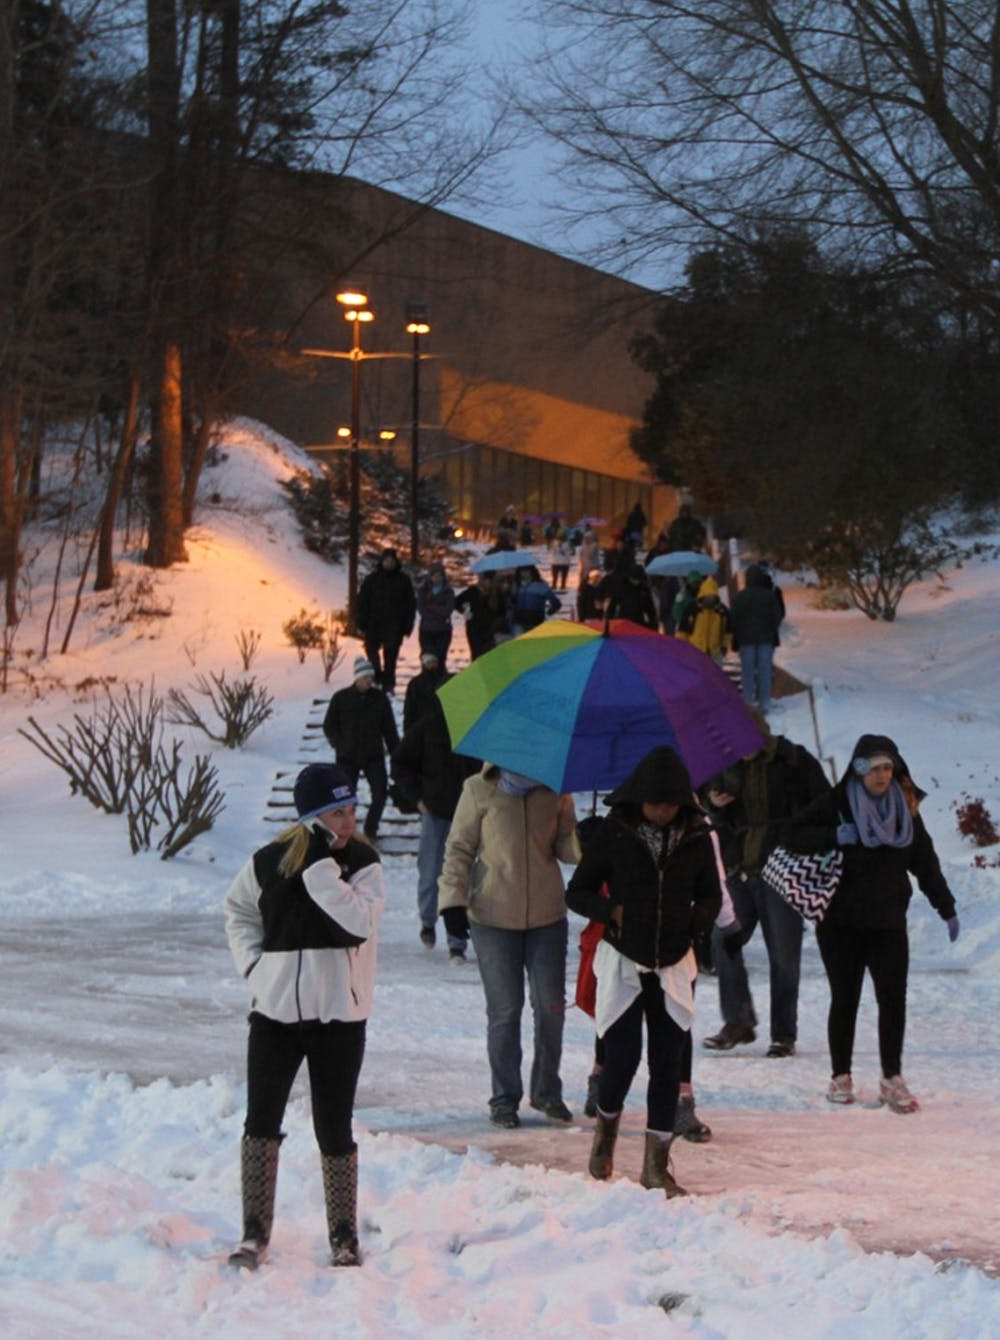 Snow storm hits Chapel Hill, strands students and residents